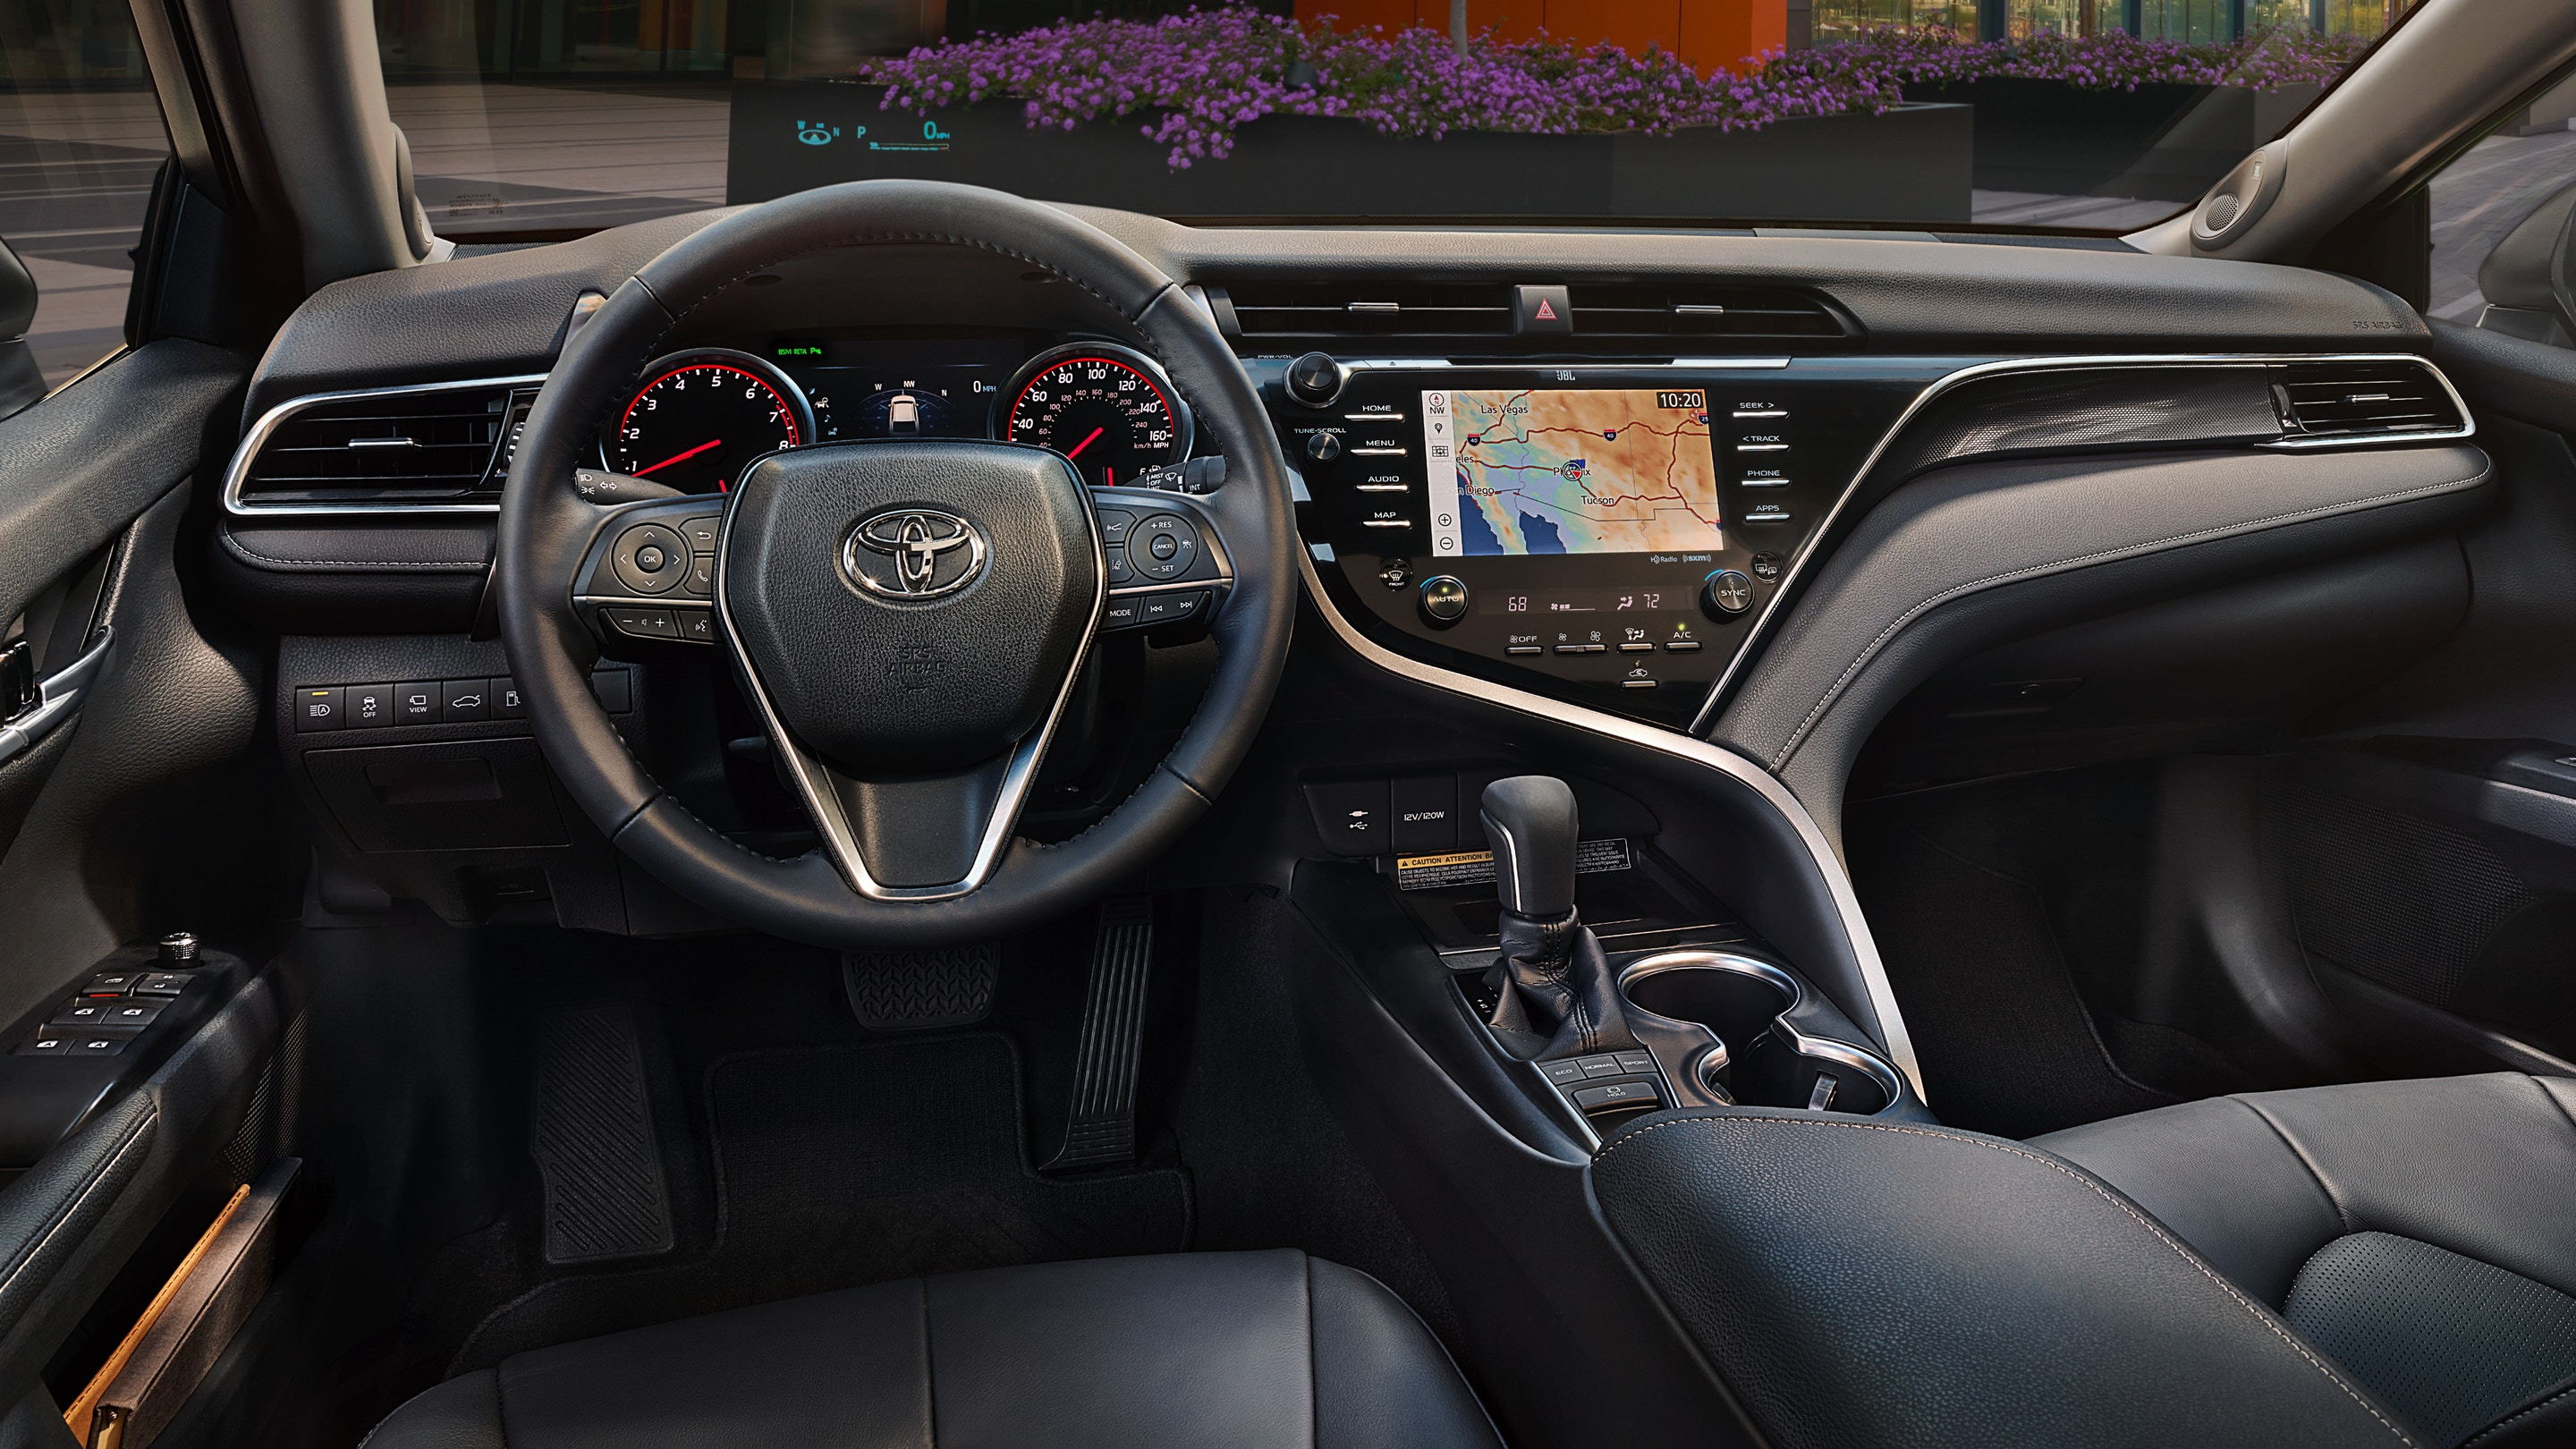 The Secure Cabin of the 2020 Toyota Camry